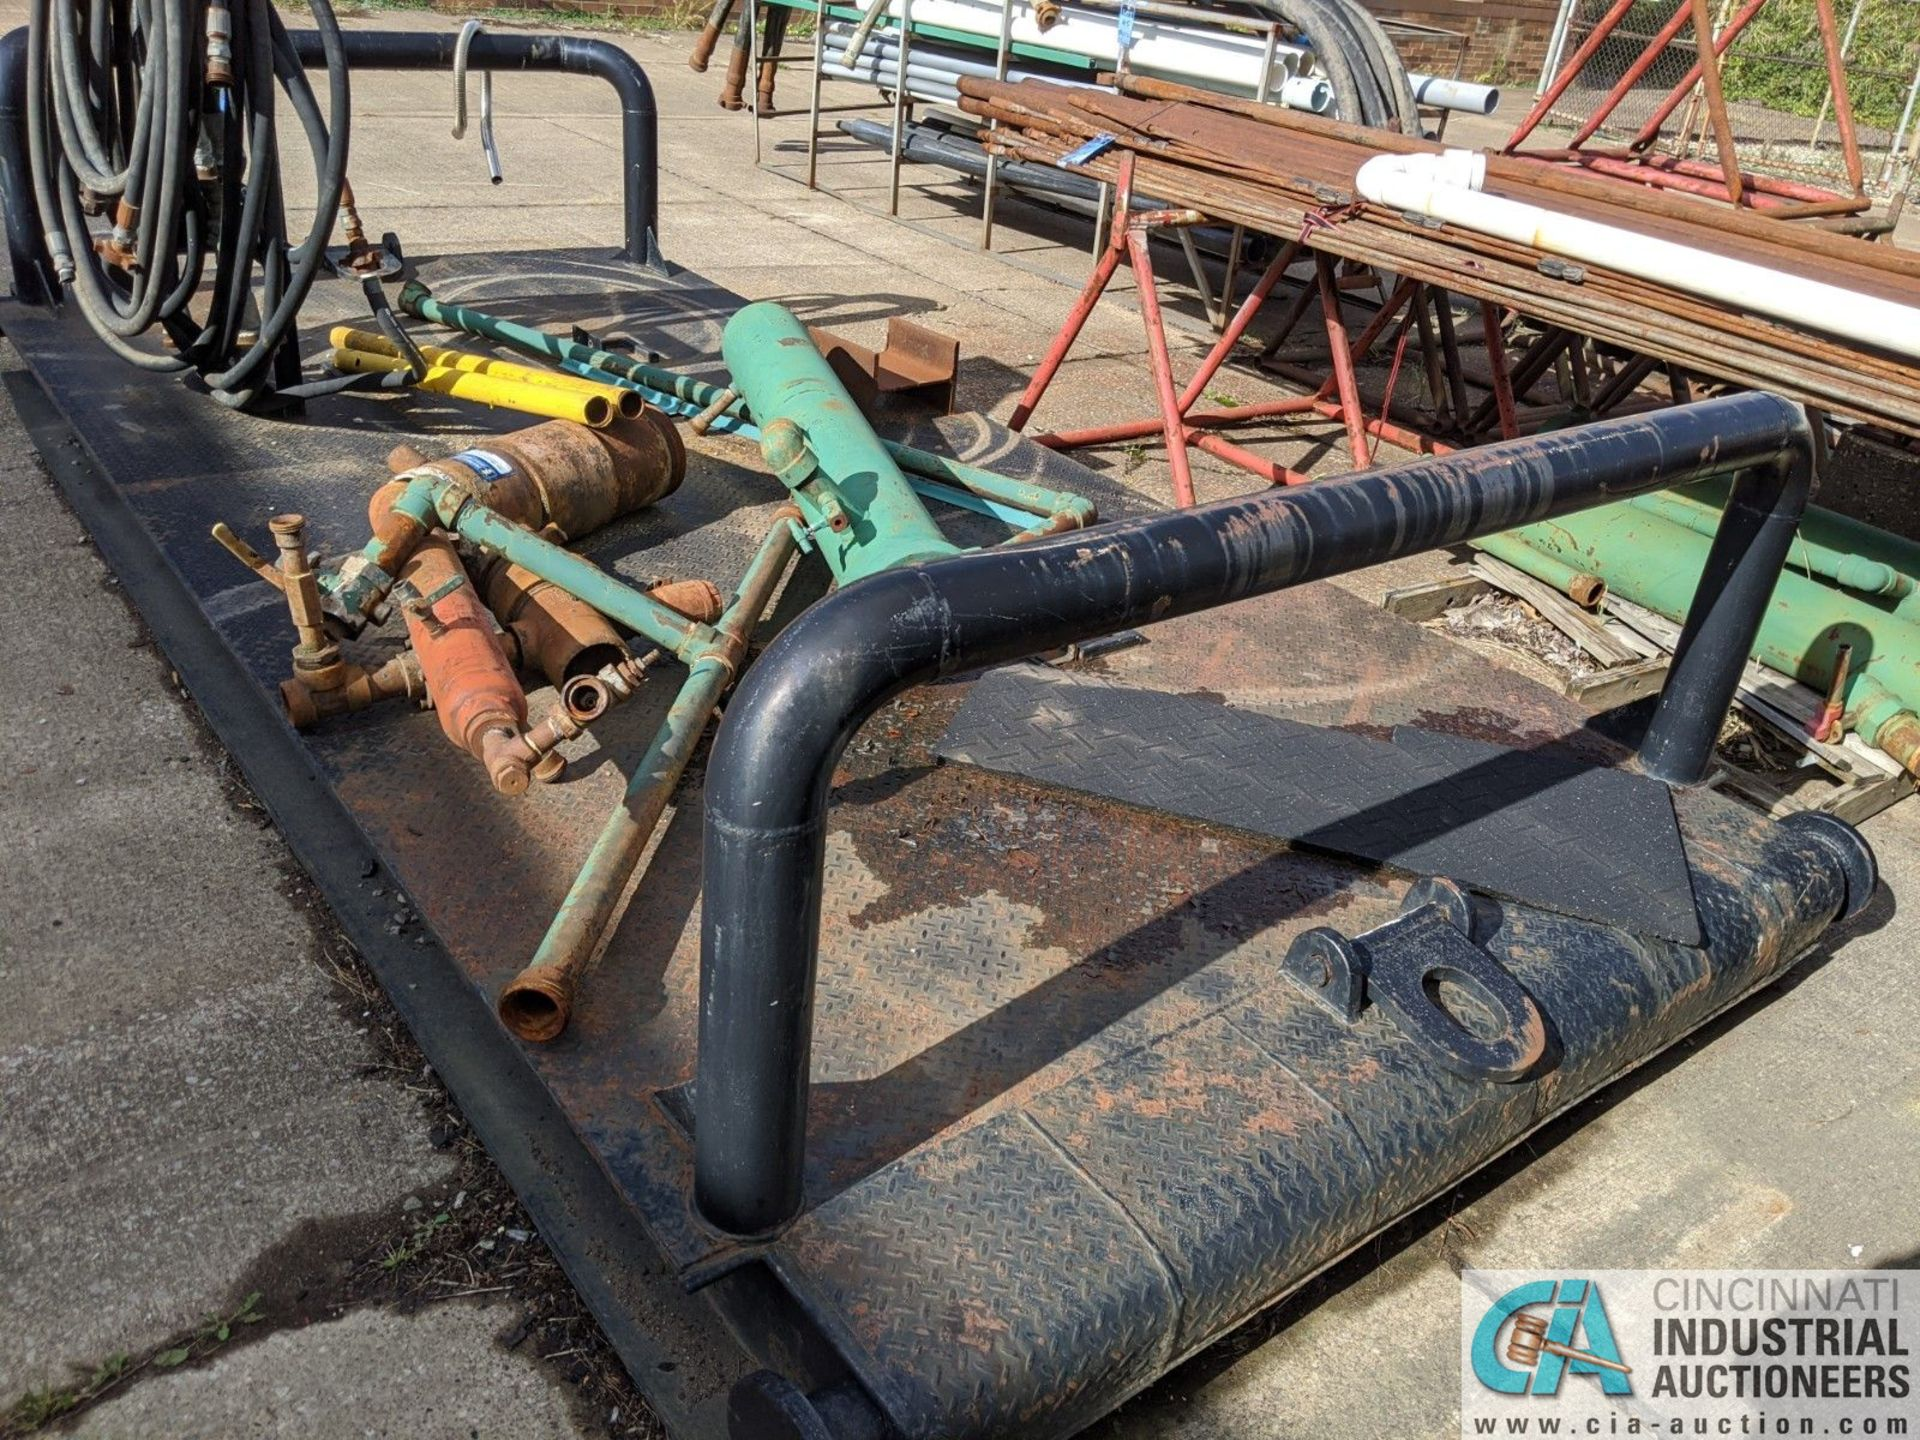 7' WIDE X 14' STEEL SKID (8635 East Ave., Mentor, OH 44060 - John Magnasum: 440-667-9414) - Image 3 of 3